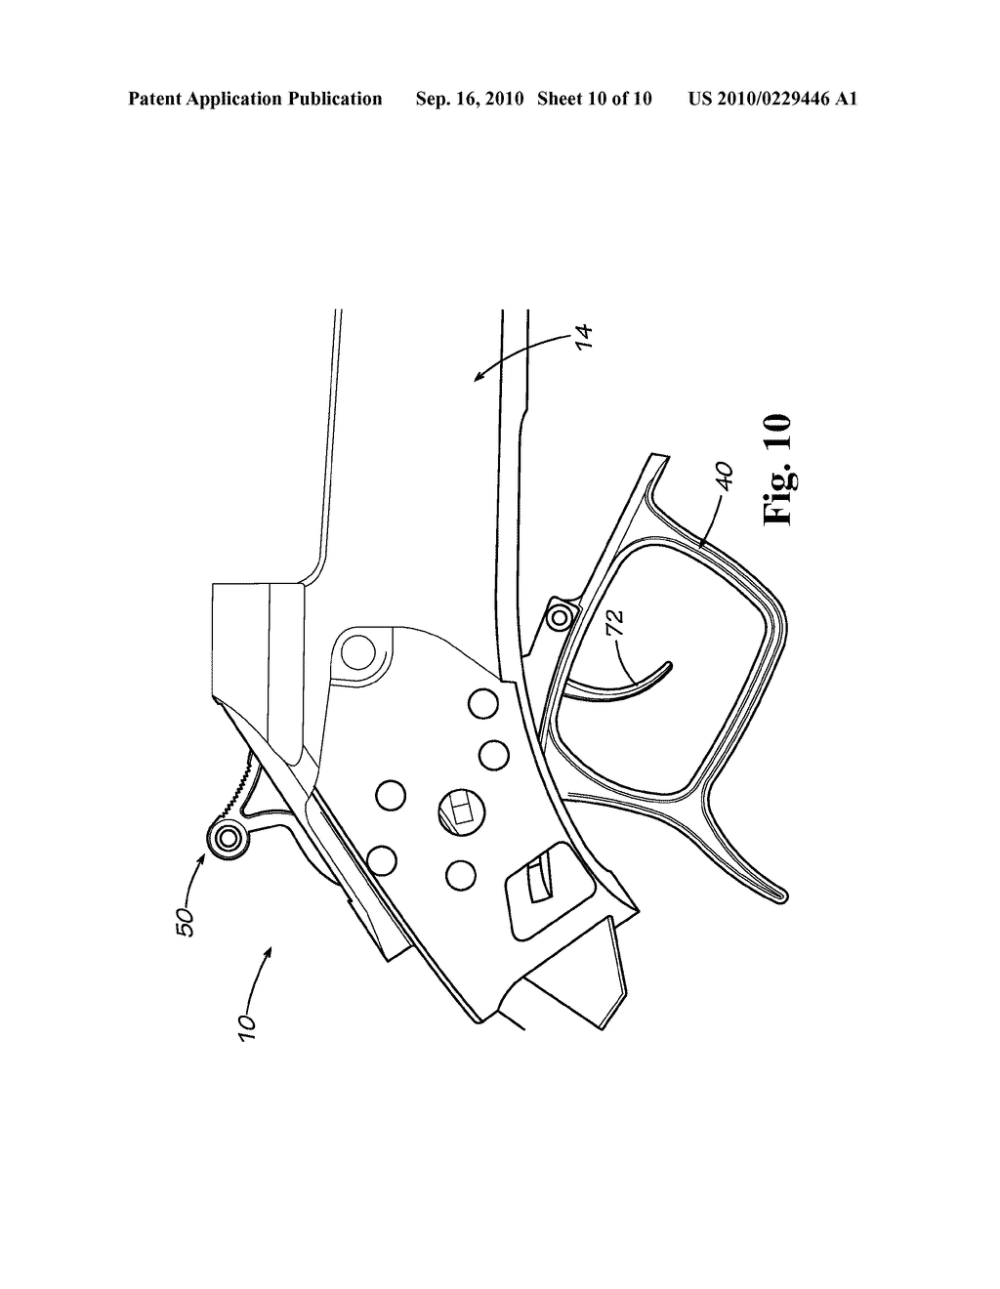 medium resolution of break action firearm and trigger mechanism diagram schematic and image 11